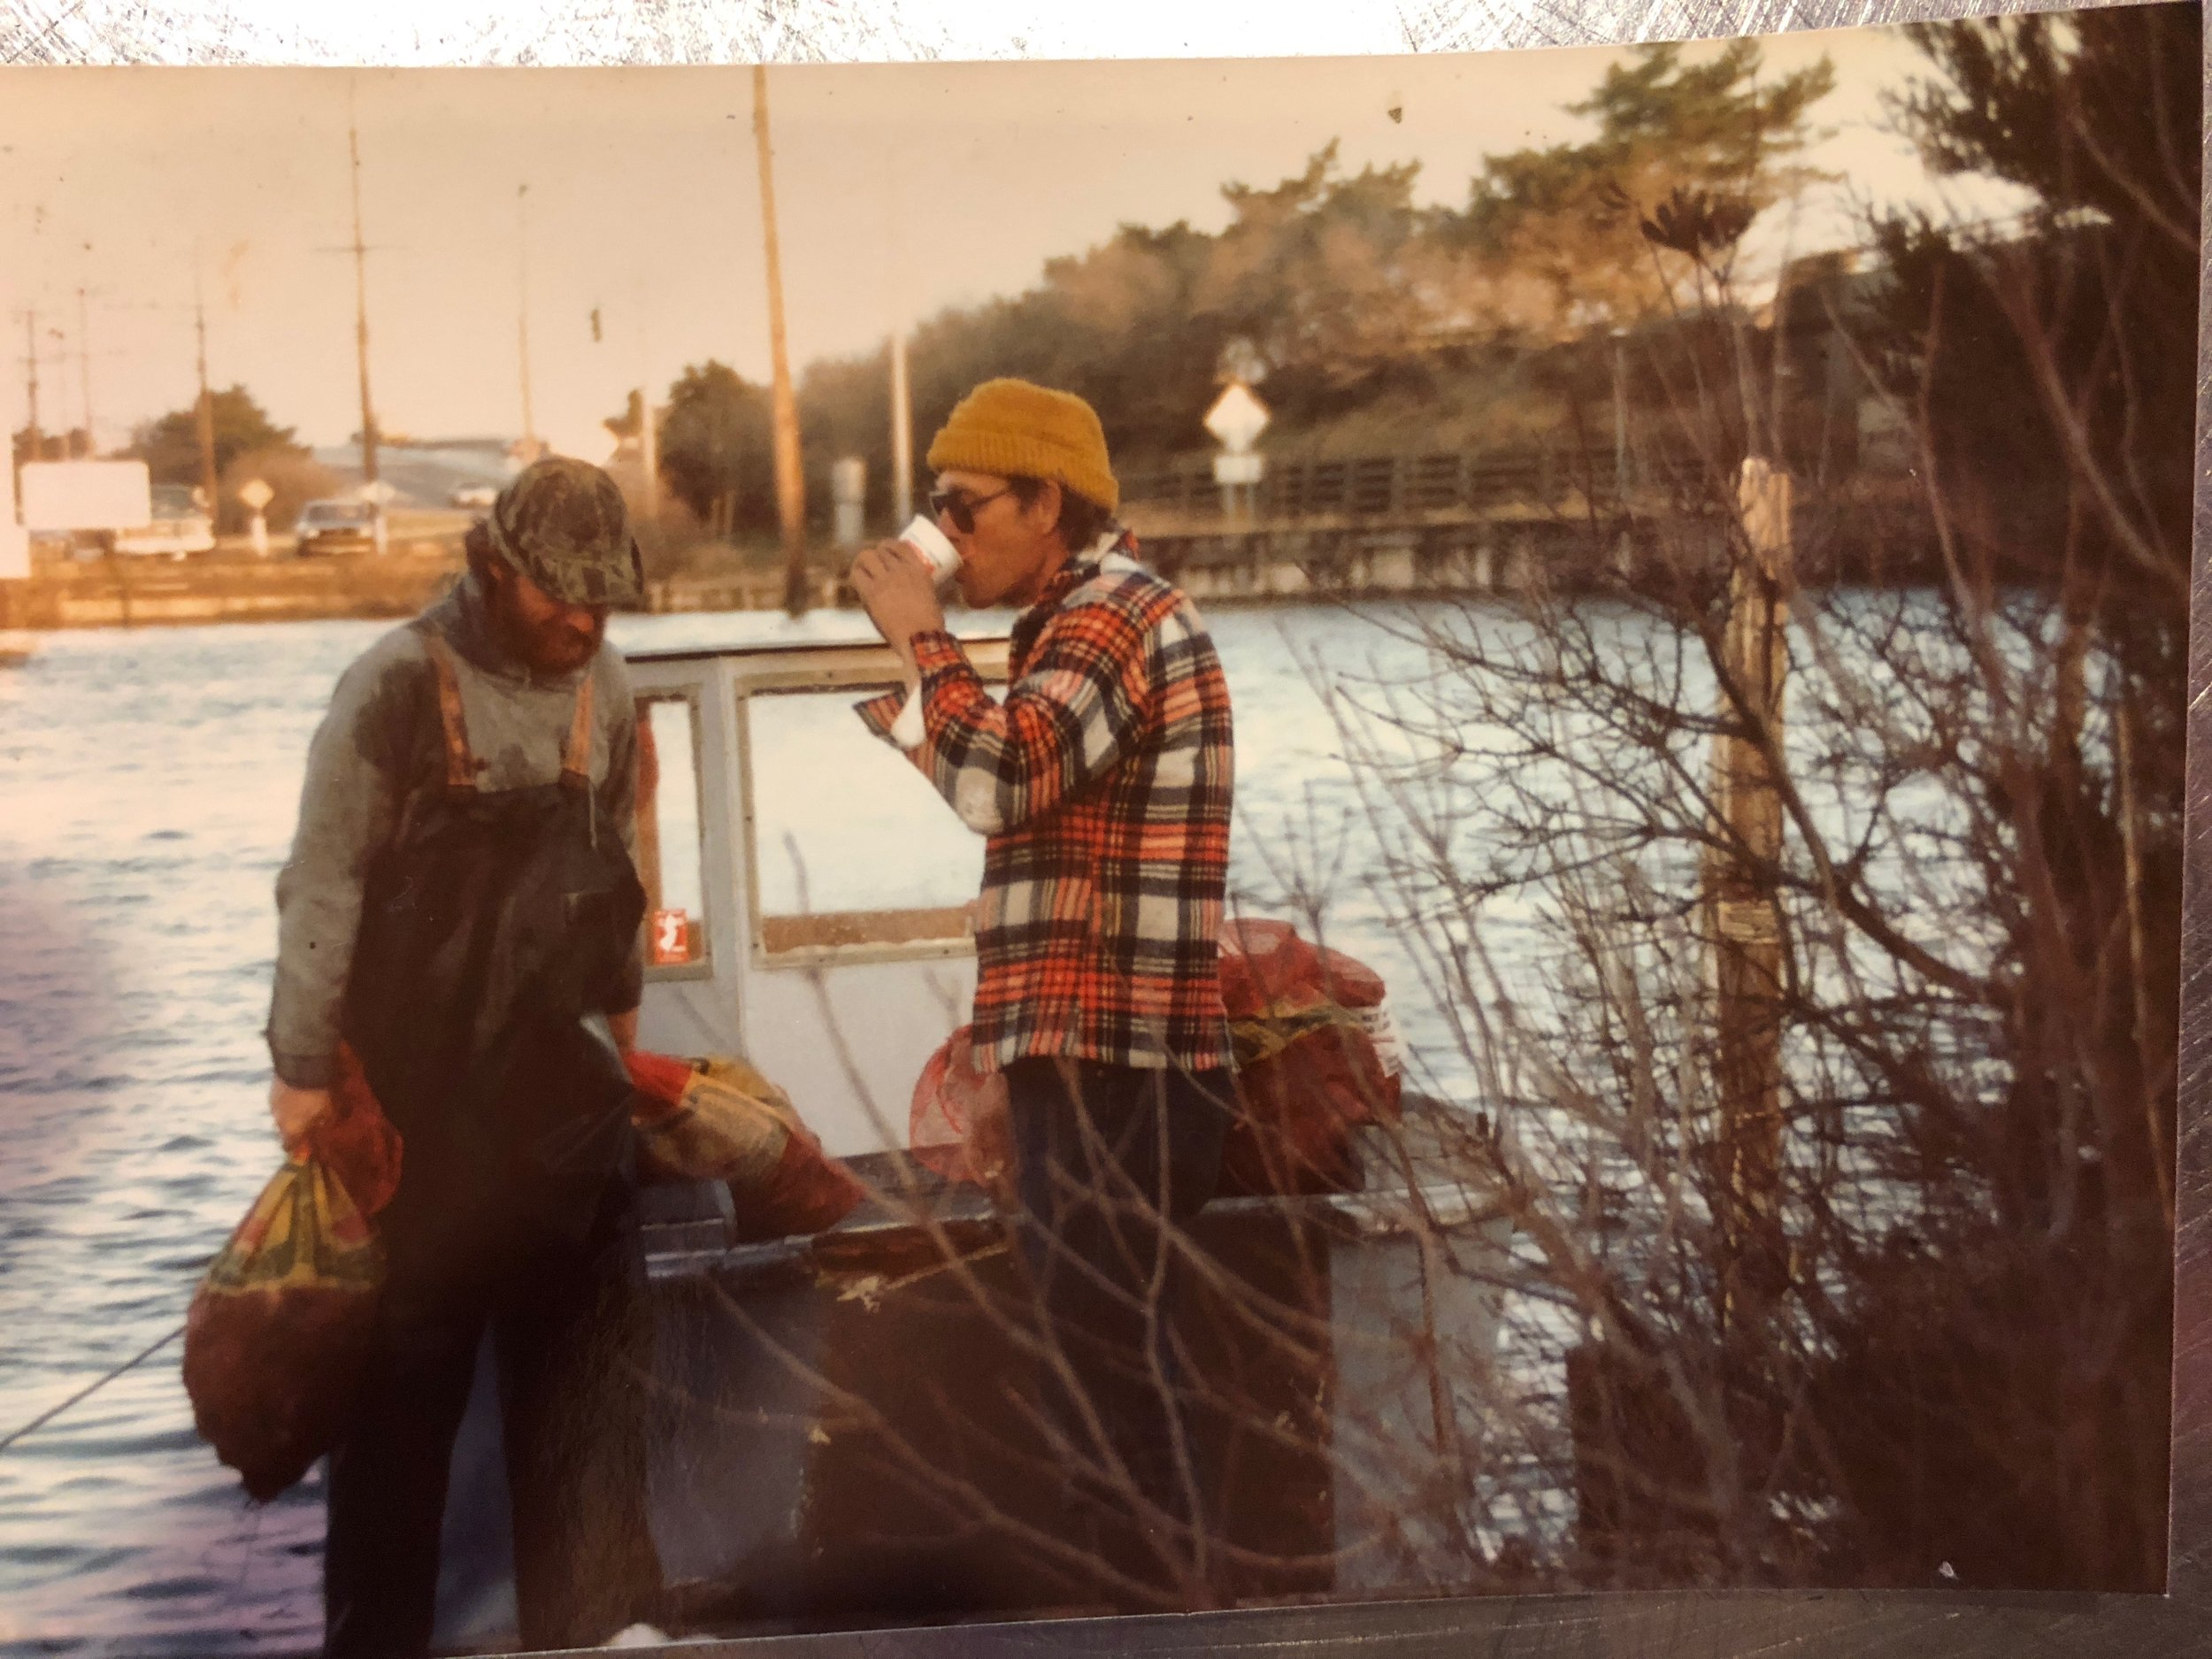 Young folks working the bay in the 1970s.